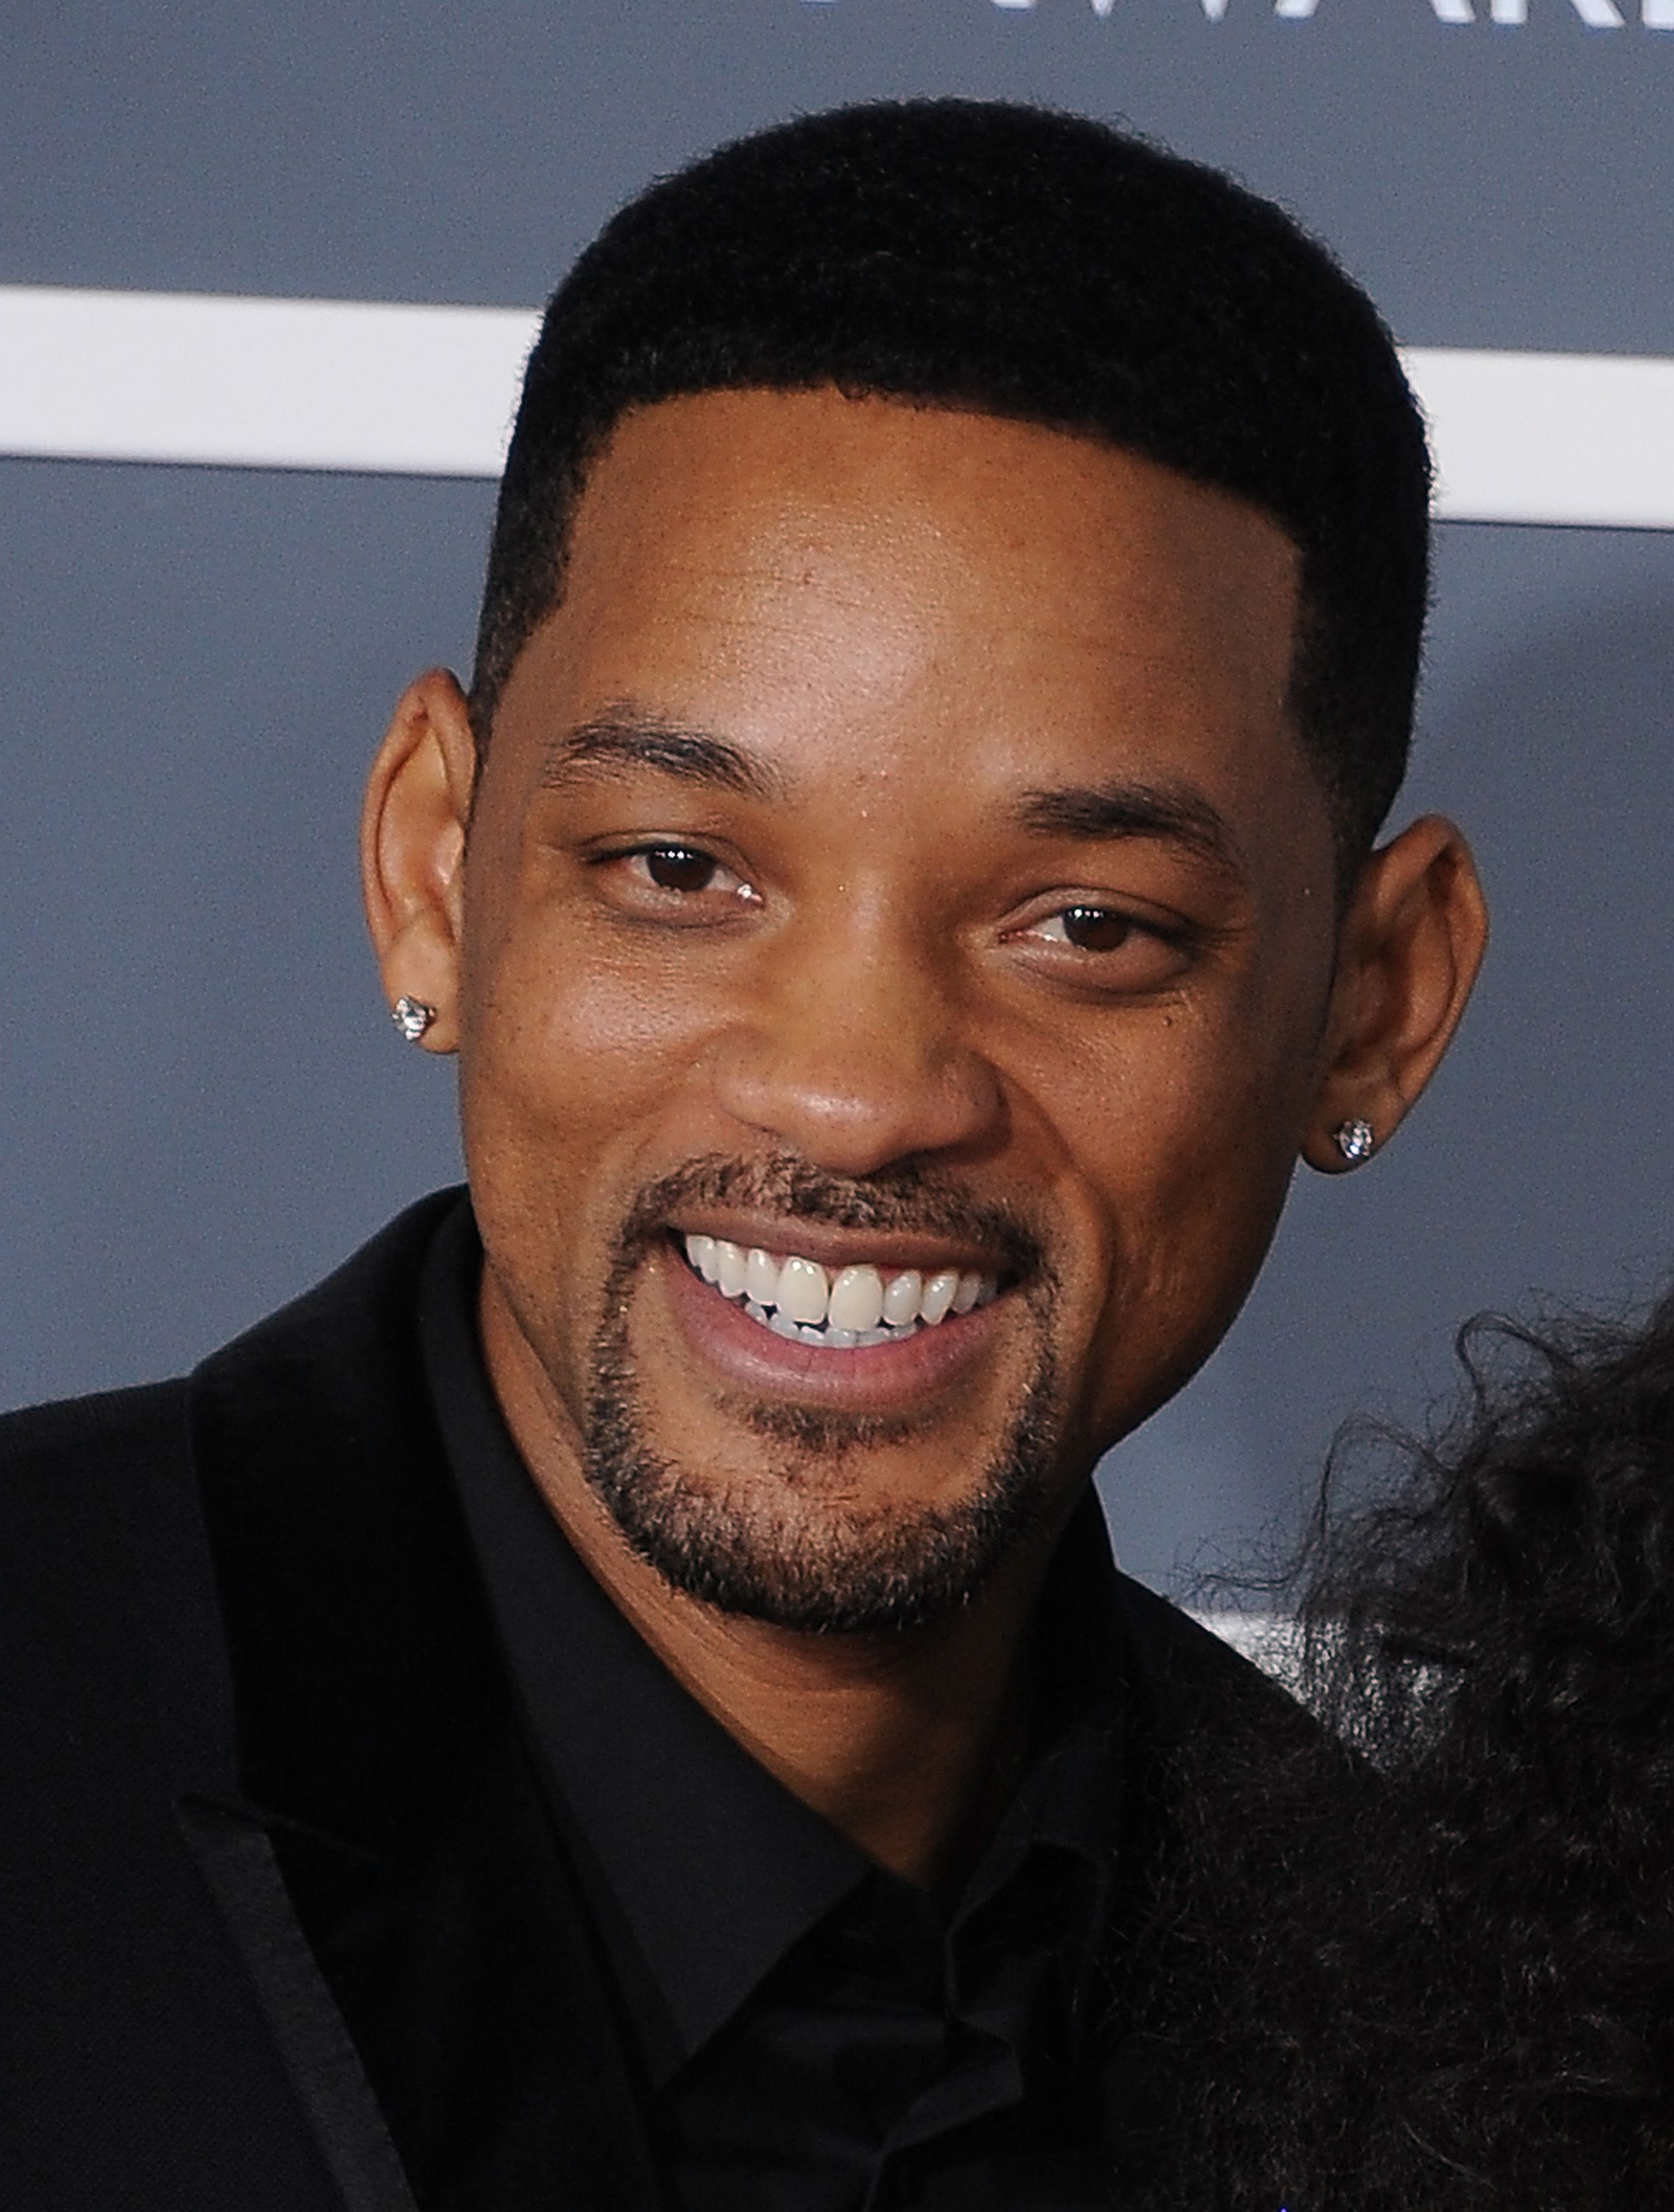 will smith - Google Search | Cognitive Functions SeTi | Pinterest ...